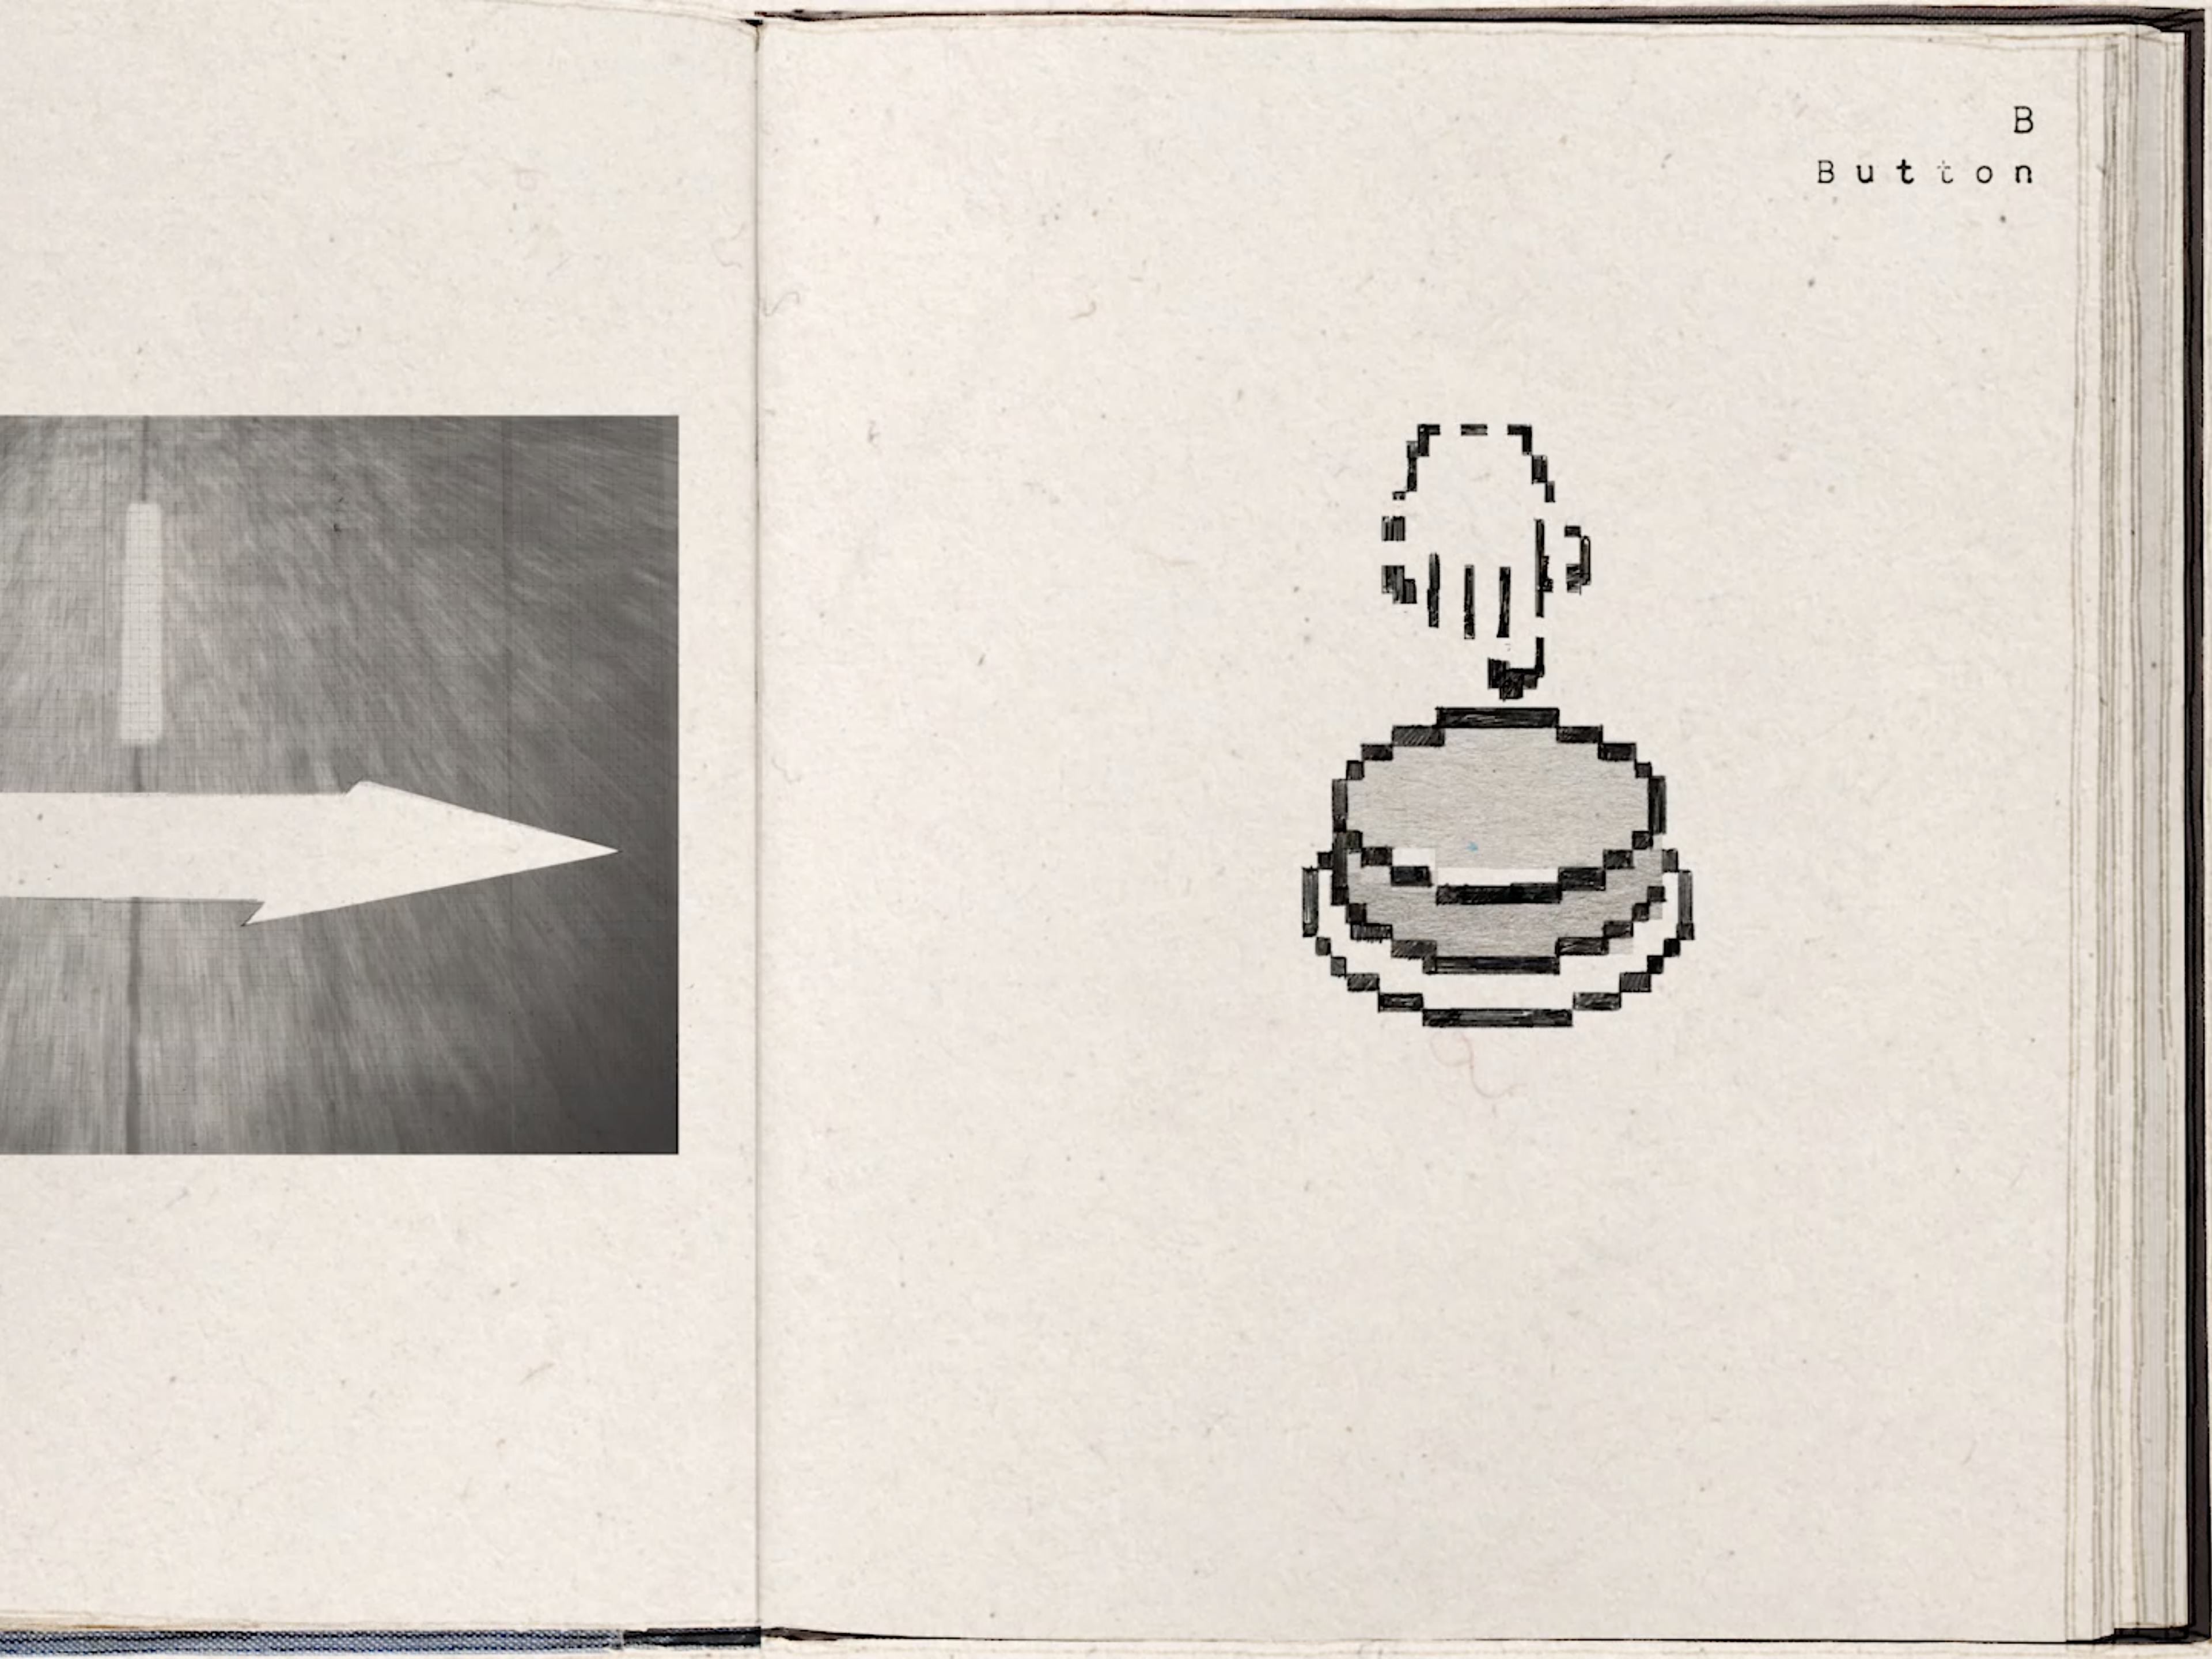 An open book. The left page shows an arrow poitning righ on a road. The right image is of a finger on a button